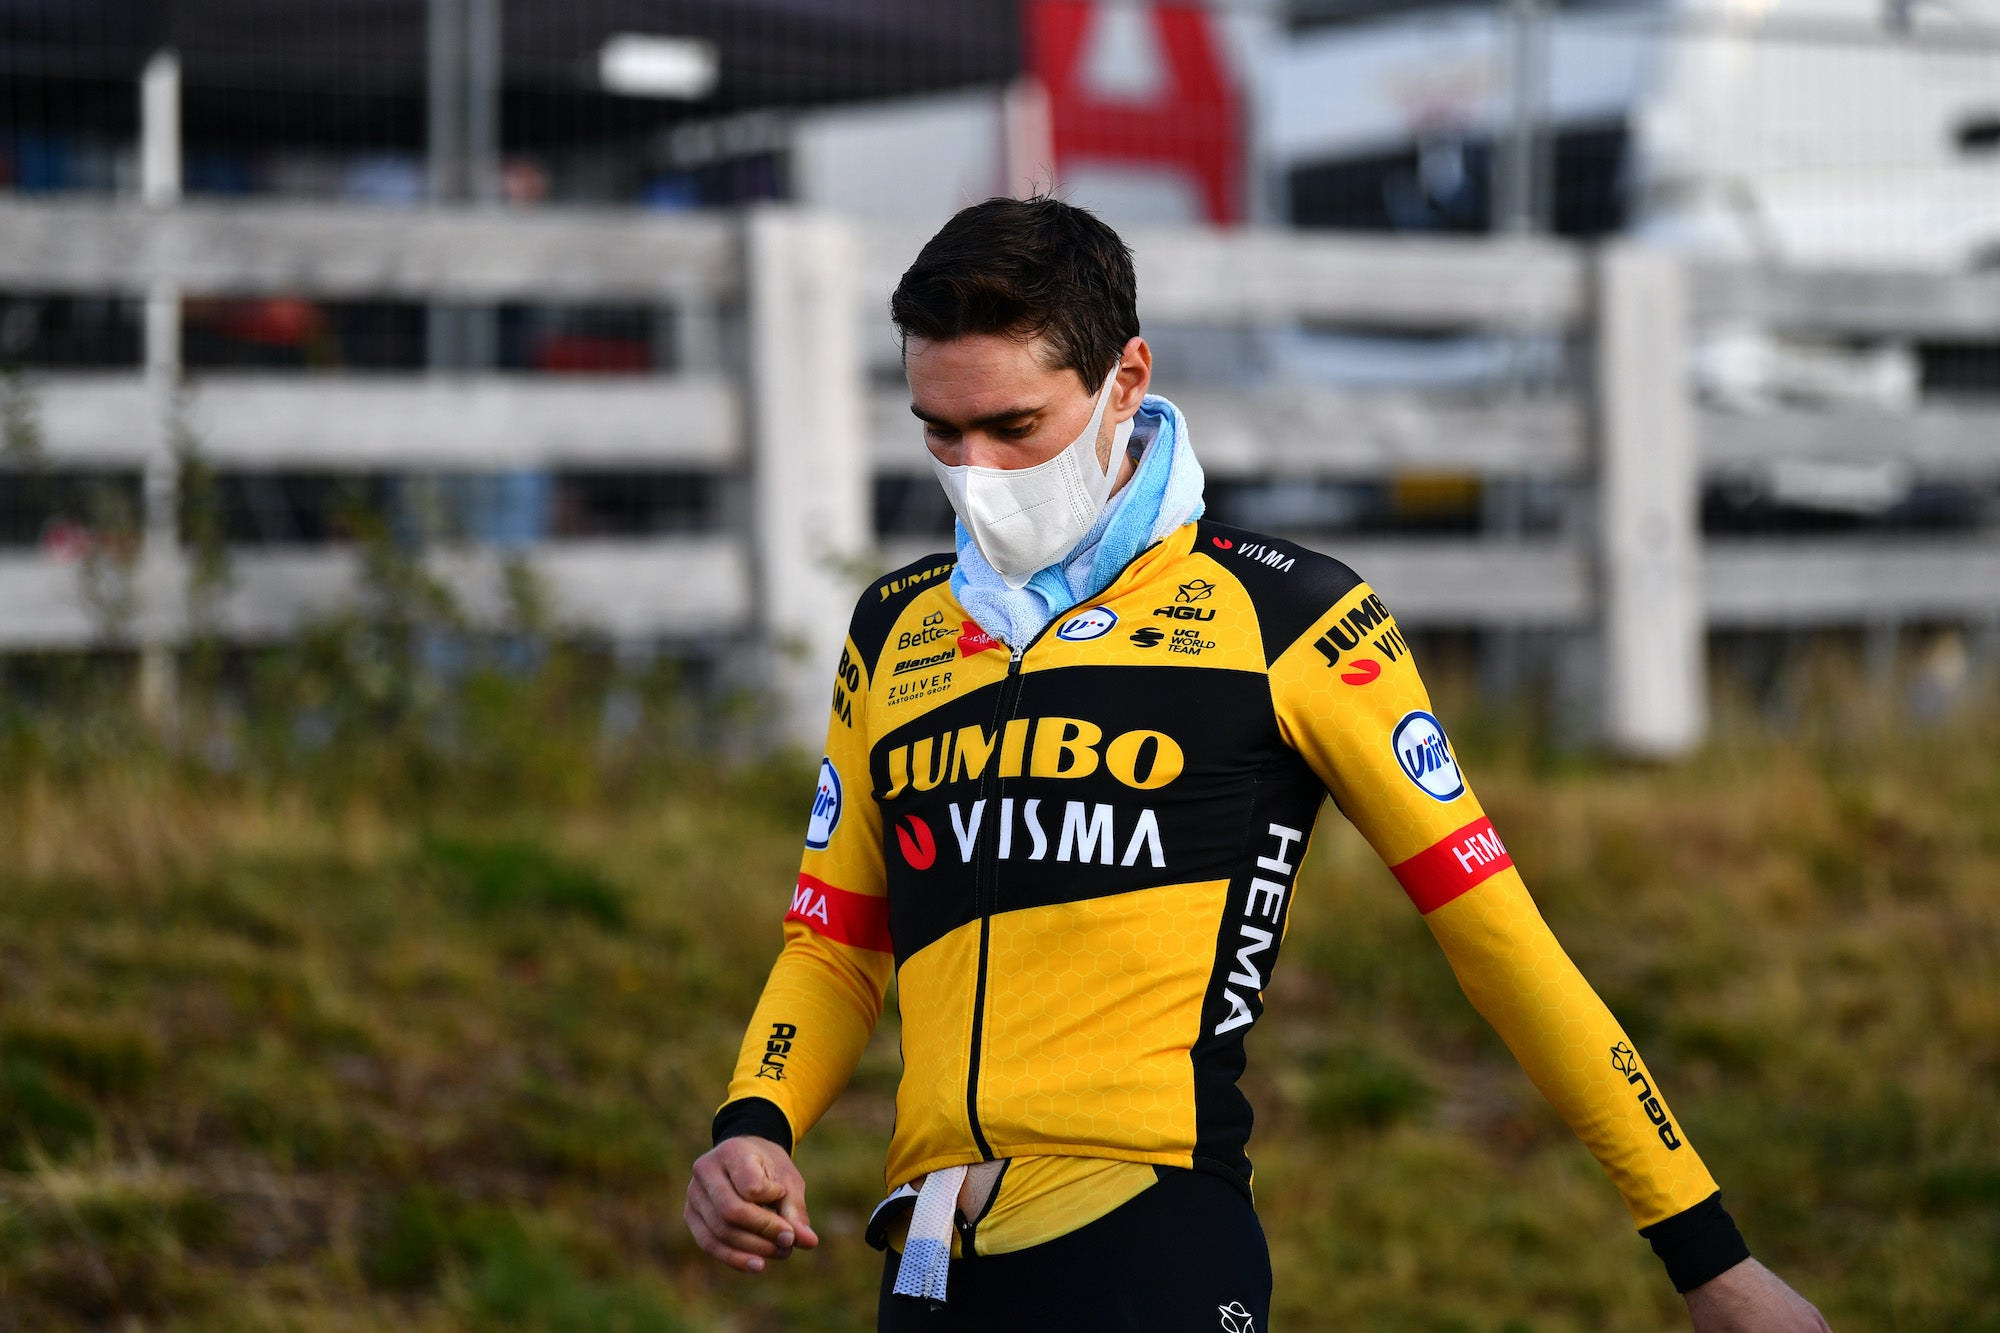 Wout van Aert, Marcel Kittel extend support to Tom Dumoulin after call to take career break – VeloNews.com